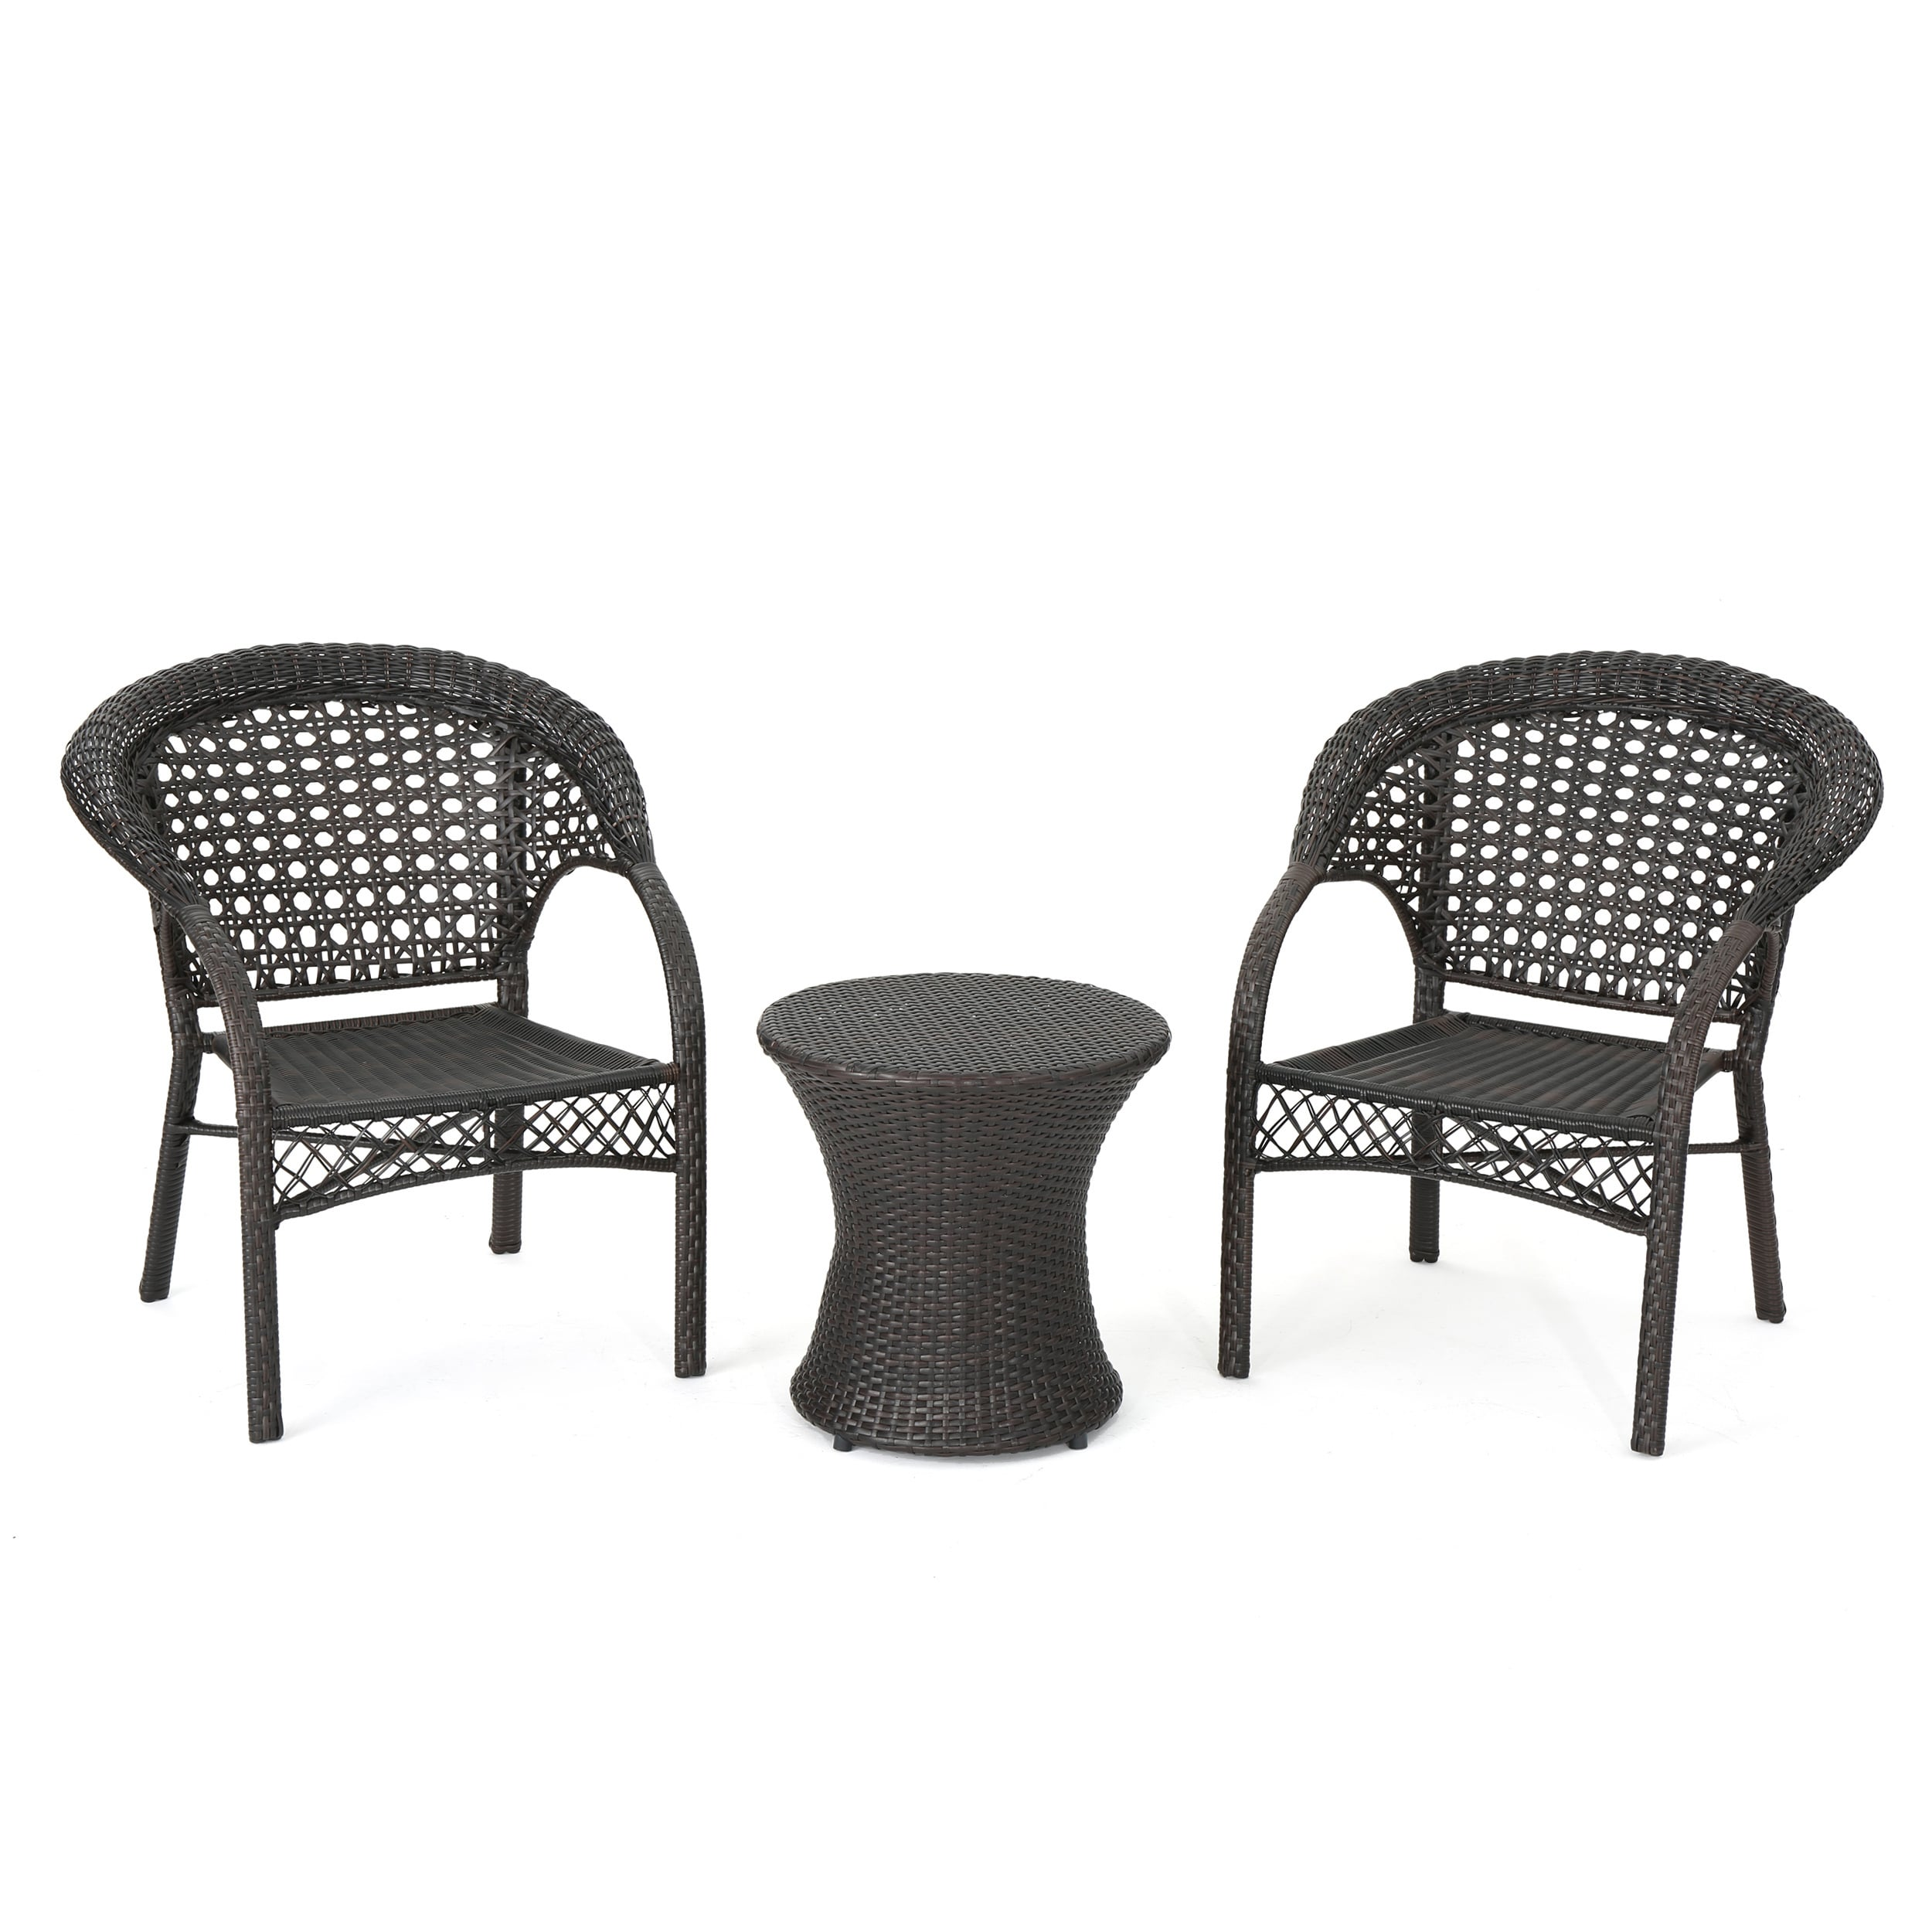 Cool Monroe Wicker 3 Piece Outdoor Stacking Chair Chat Set Gmtry Best Dining Table And Chair Ideas Images Gmtryco